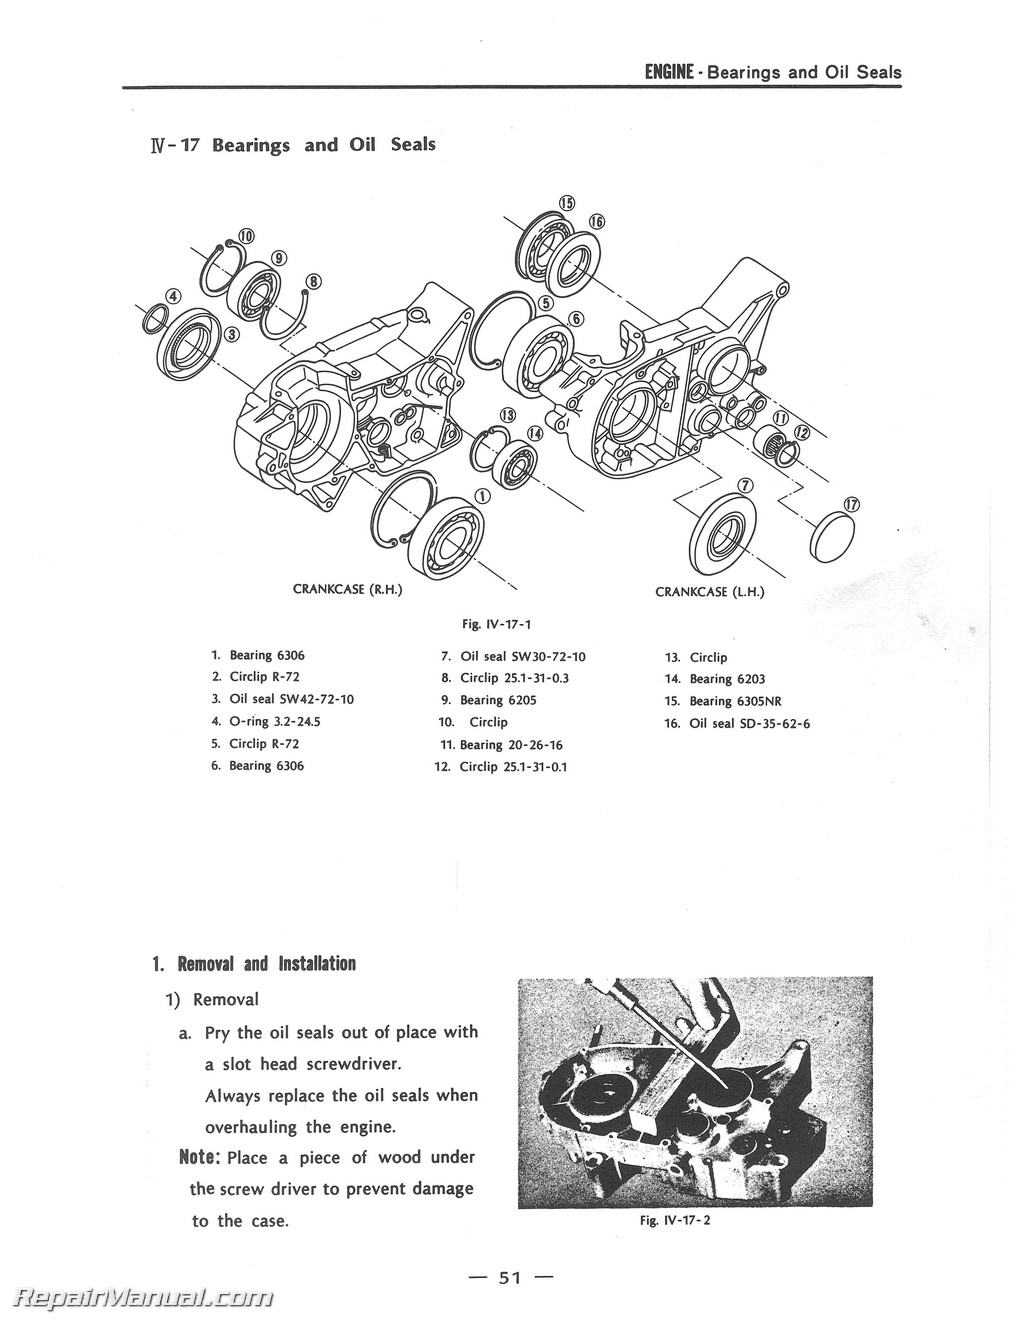 Yamaha Yz Owners Service Manual Page furthermore Yamaha Rt Cc Dt Rt Service Manual Page furthermore Polaris Wiring Diagram Needed in addition Preview also Preview. on yamaha snowmobile parts diagram